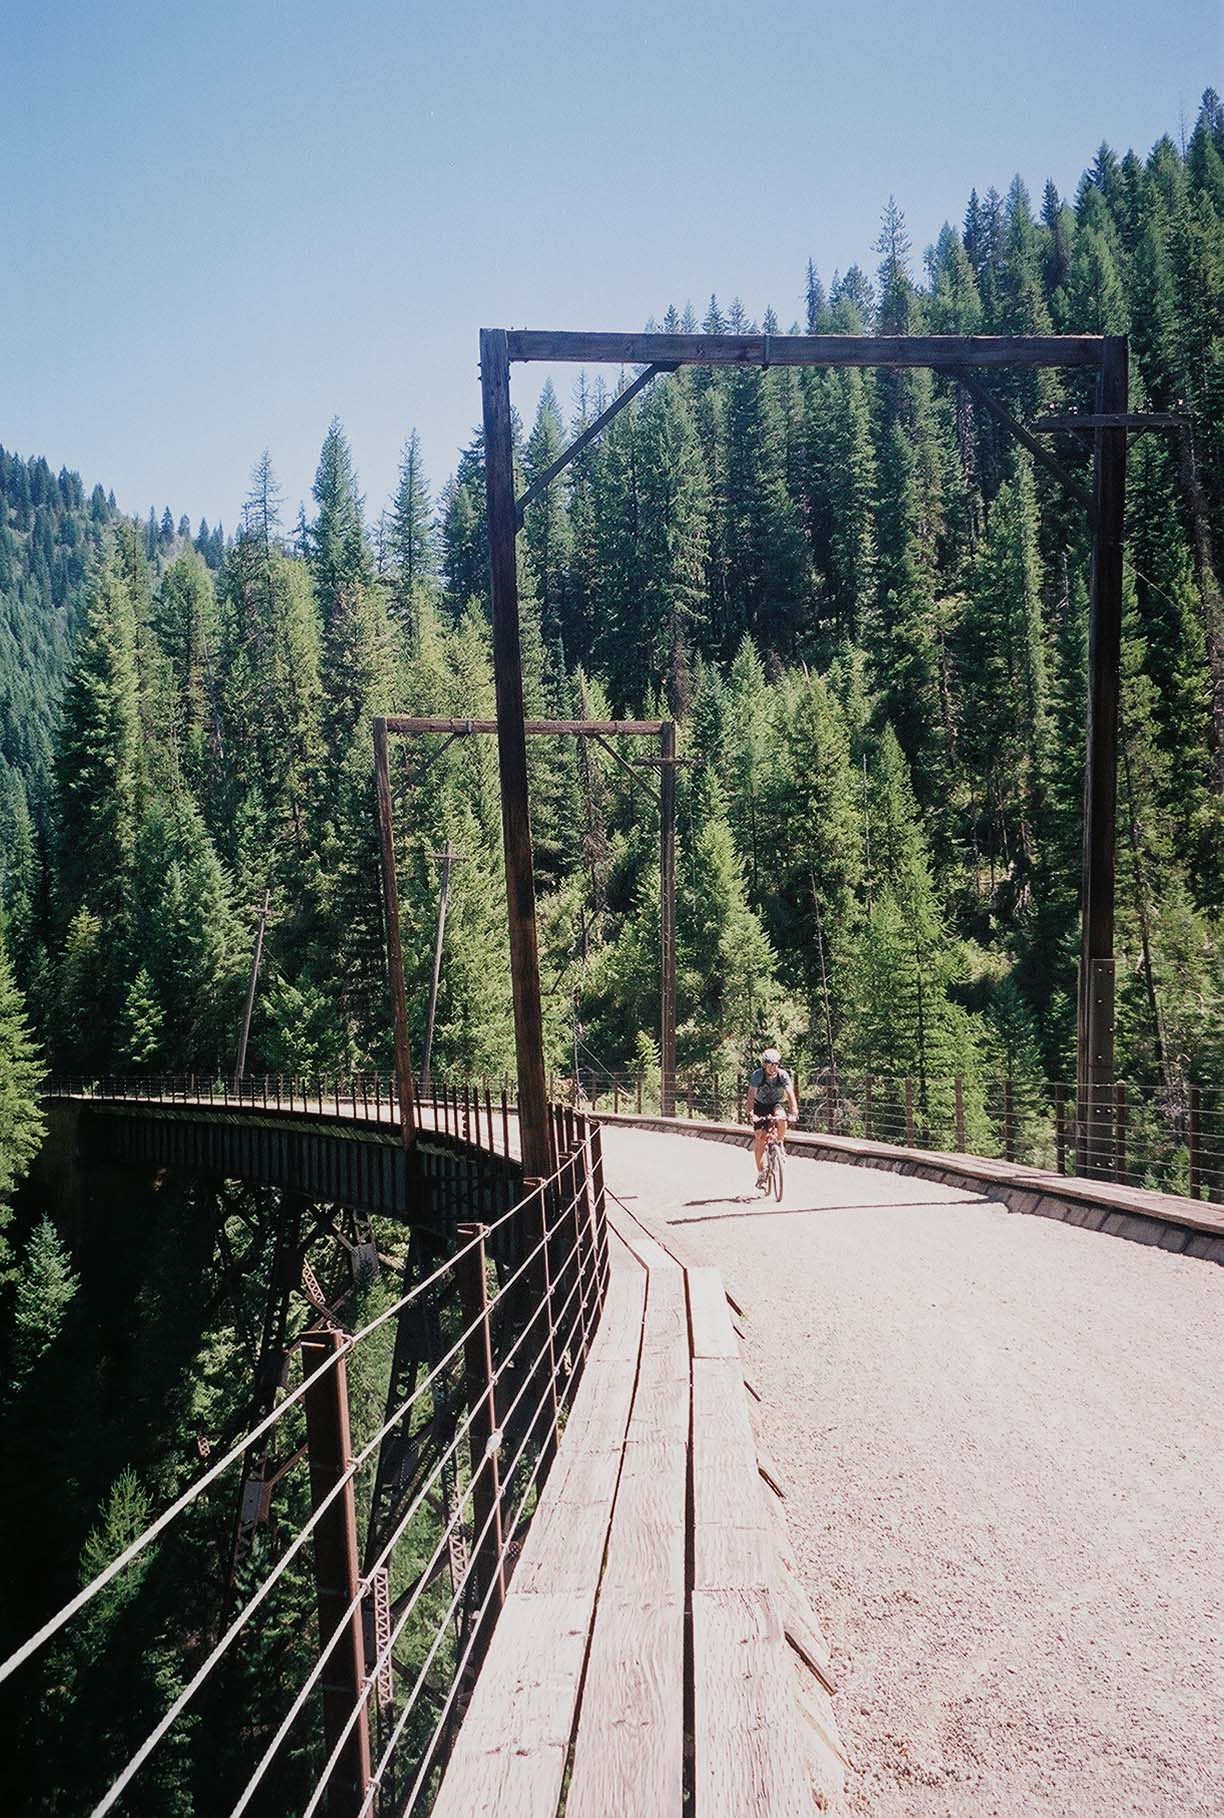 Crossing a Trestle